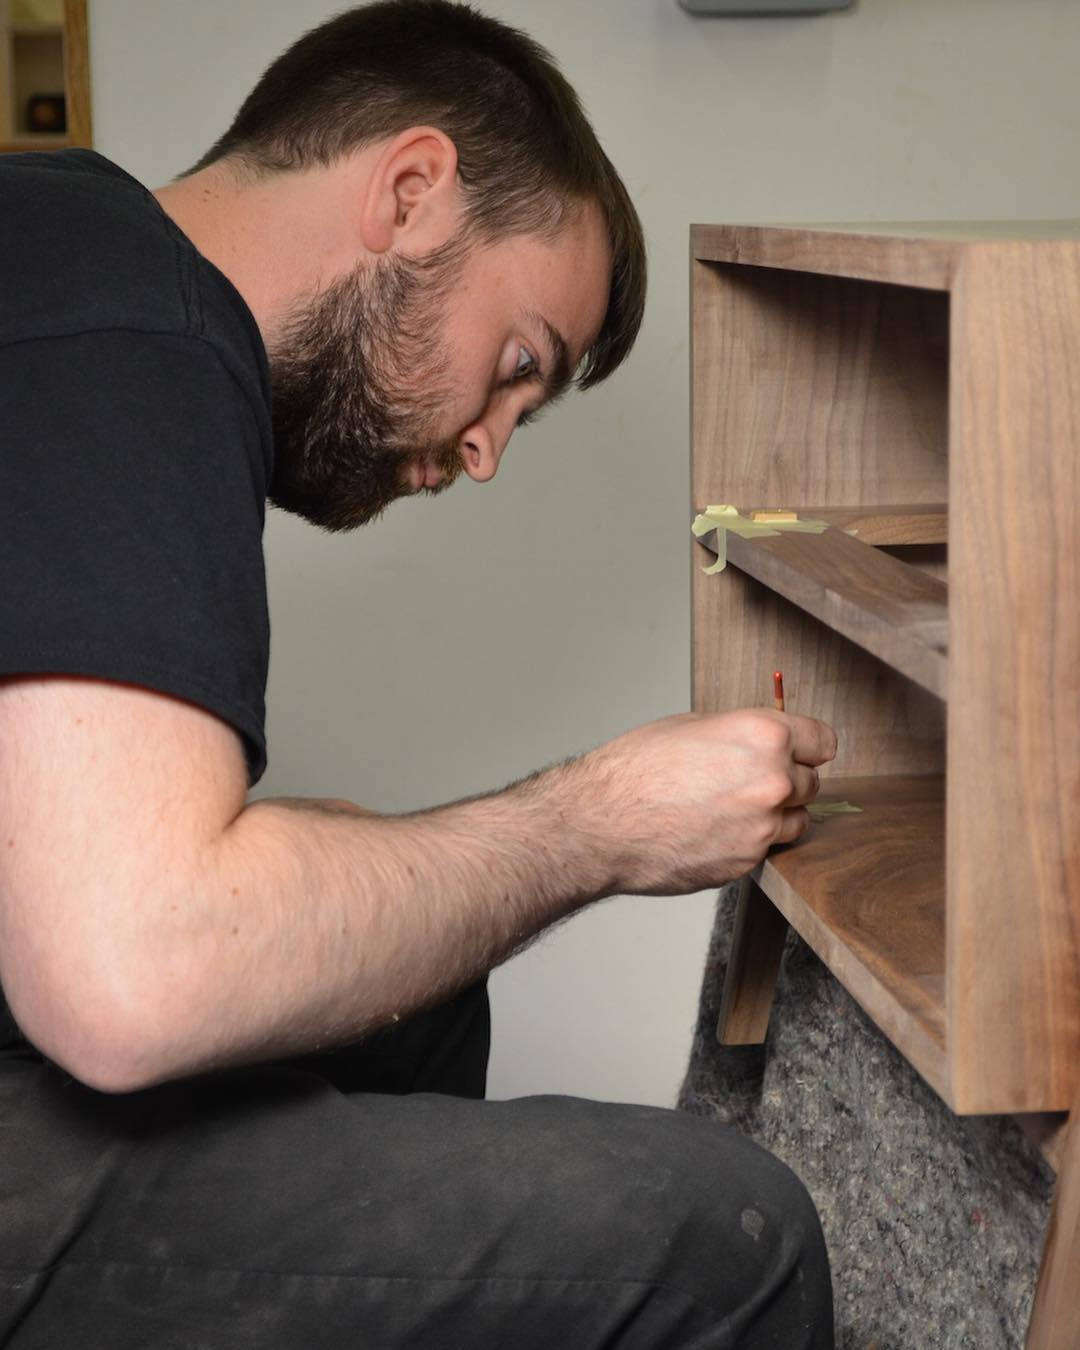 Designer maker student getting very close to finishing his walnut and oak coffee table with piston fit drawers.